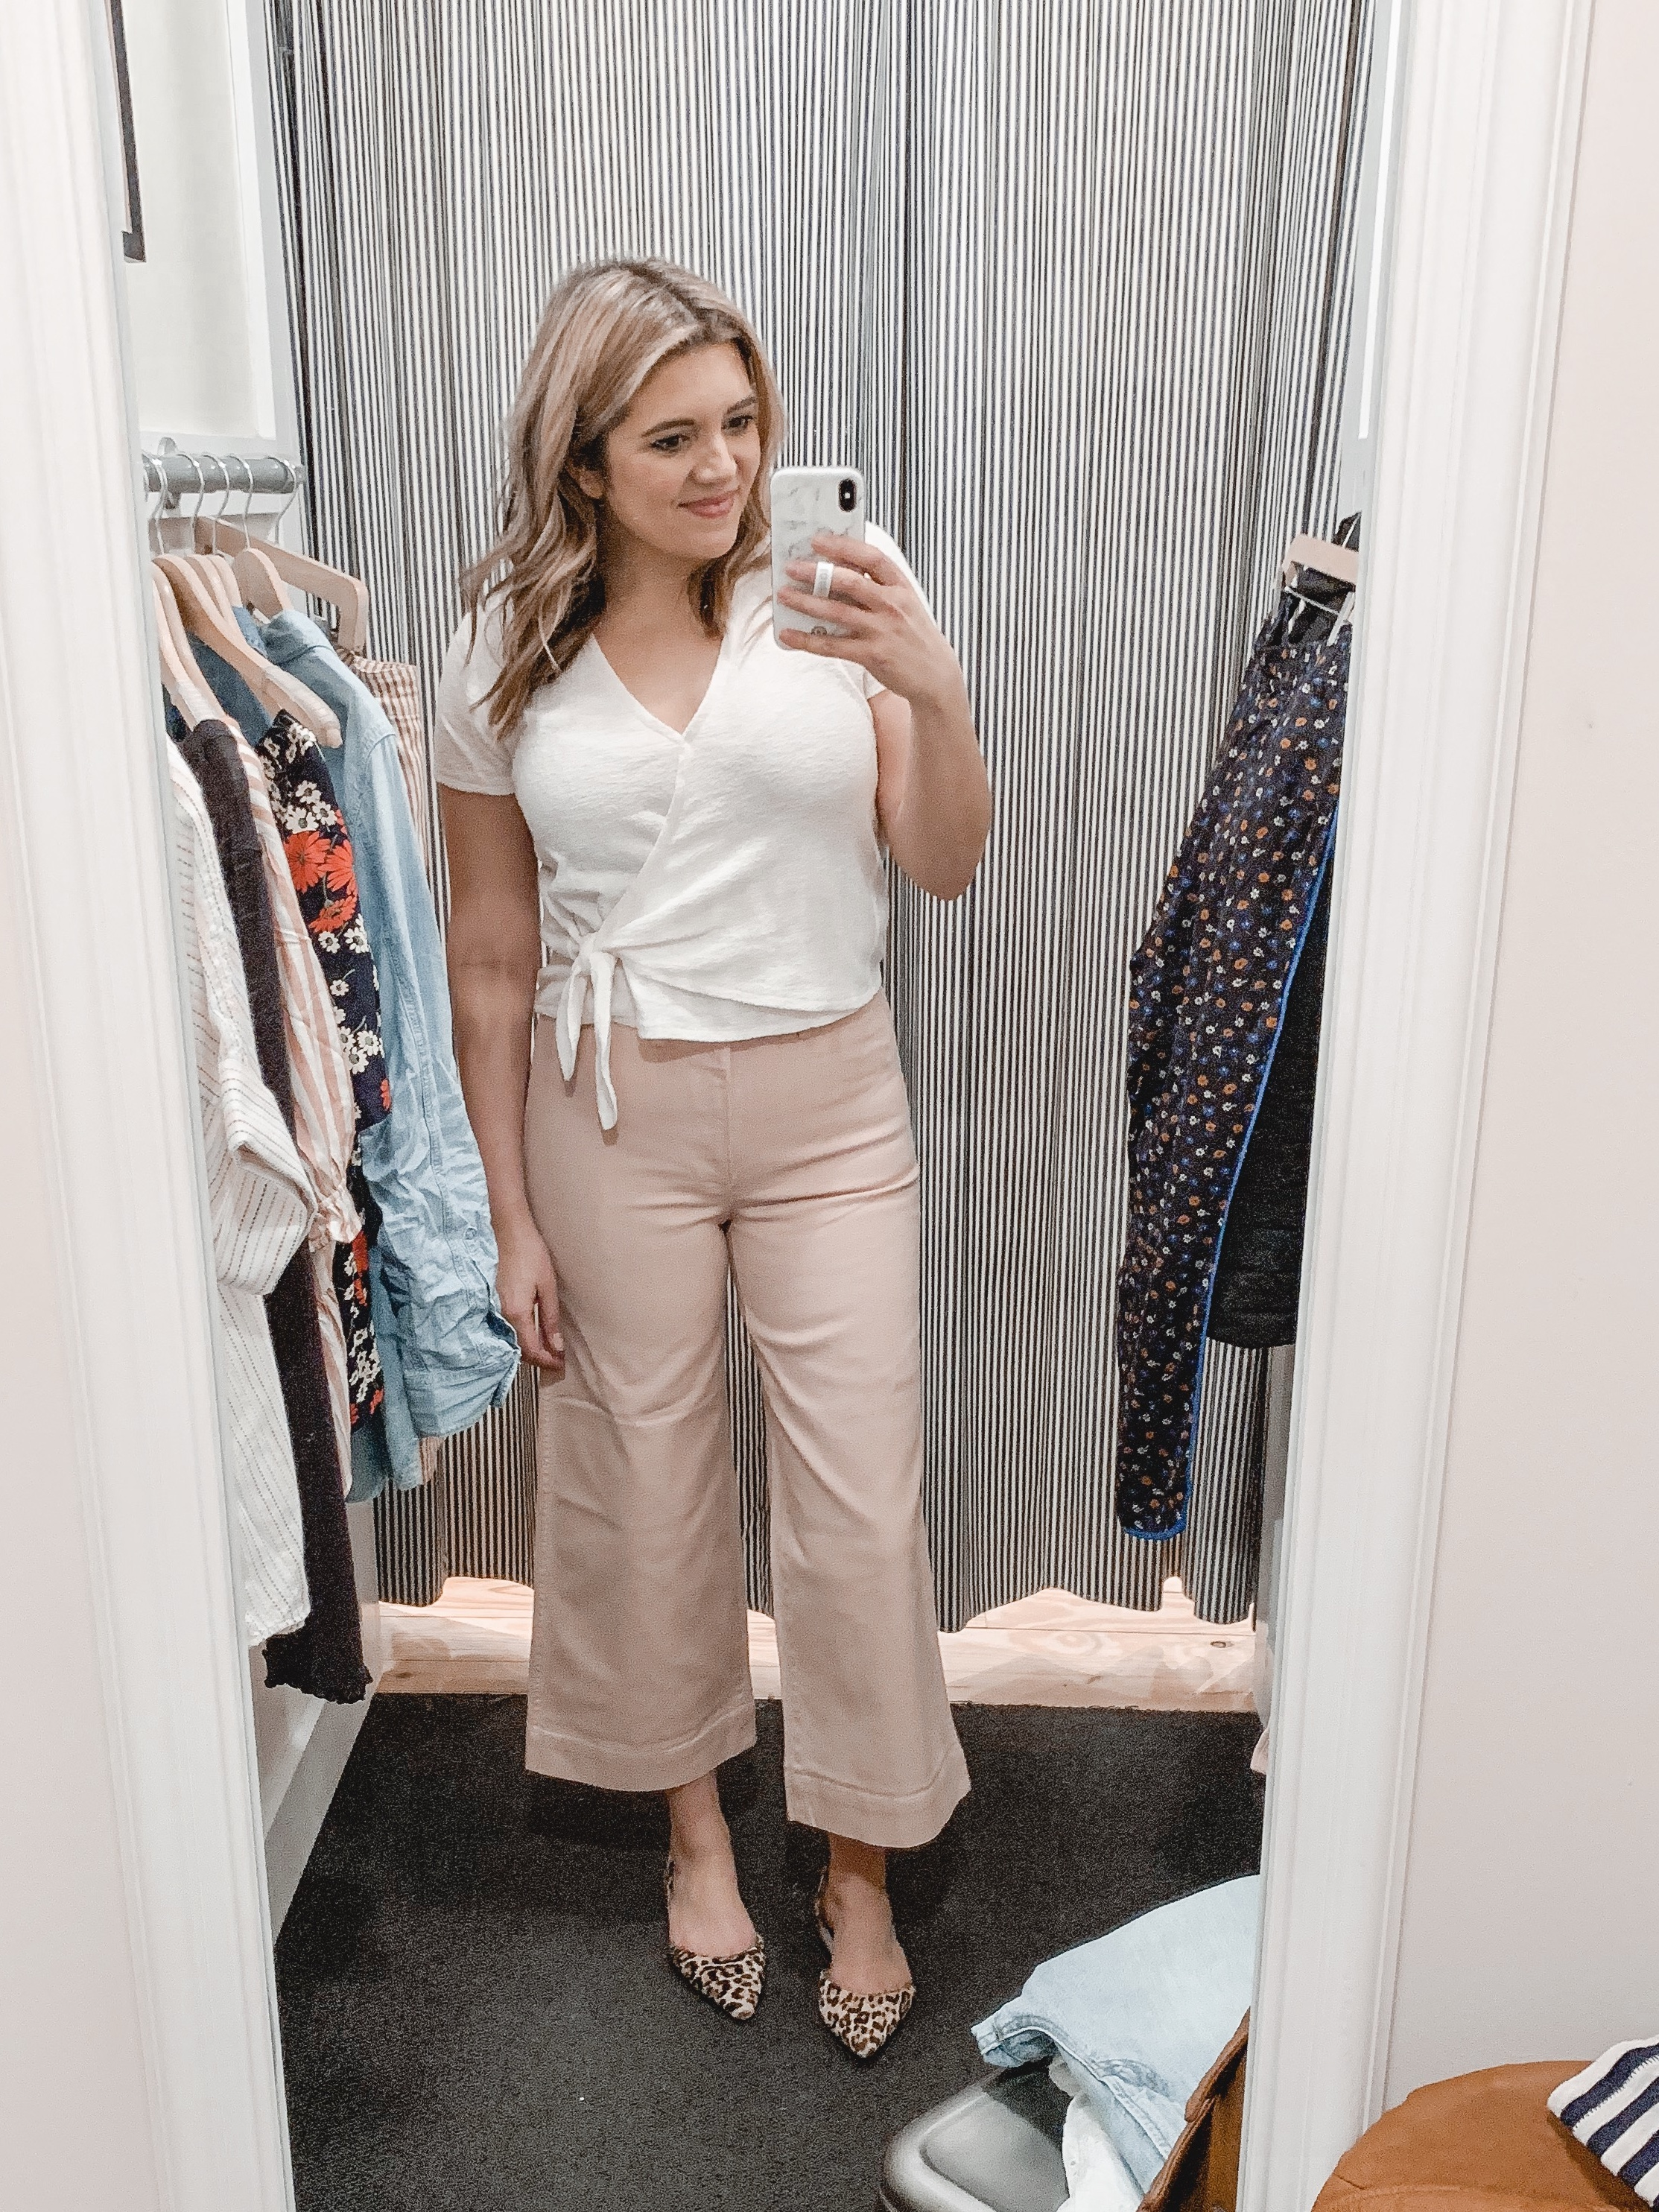 Virginia blogger Lauren Dix shares a Madewell review and try-on session, featuring 20 new Madewell jeans and tops for March 2019!